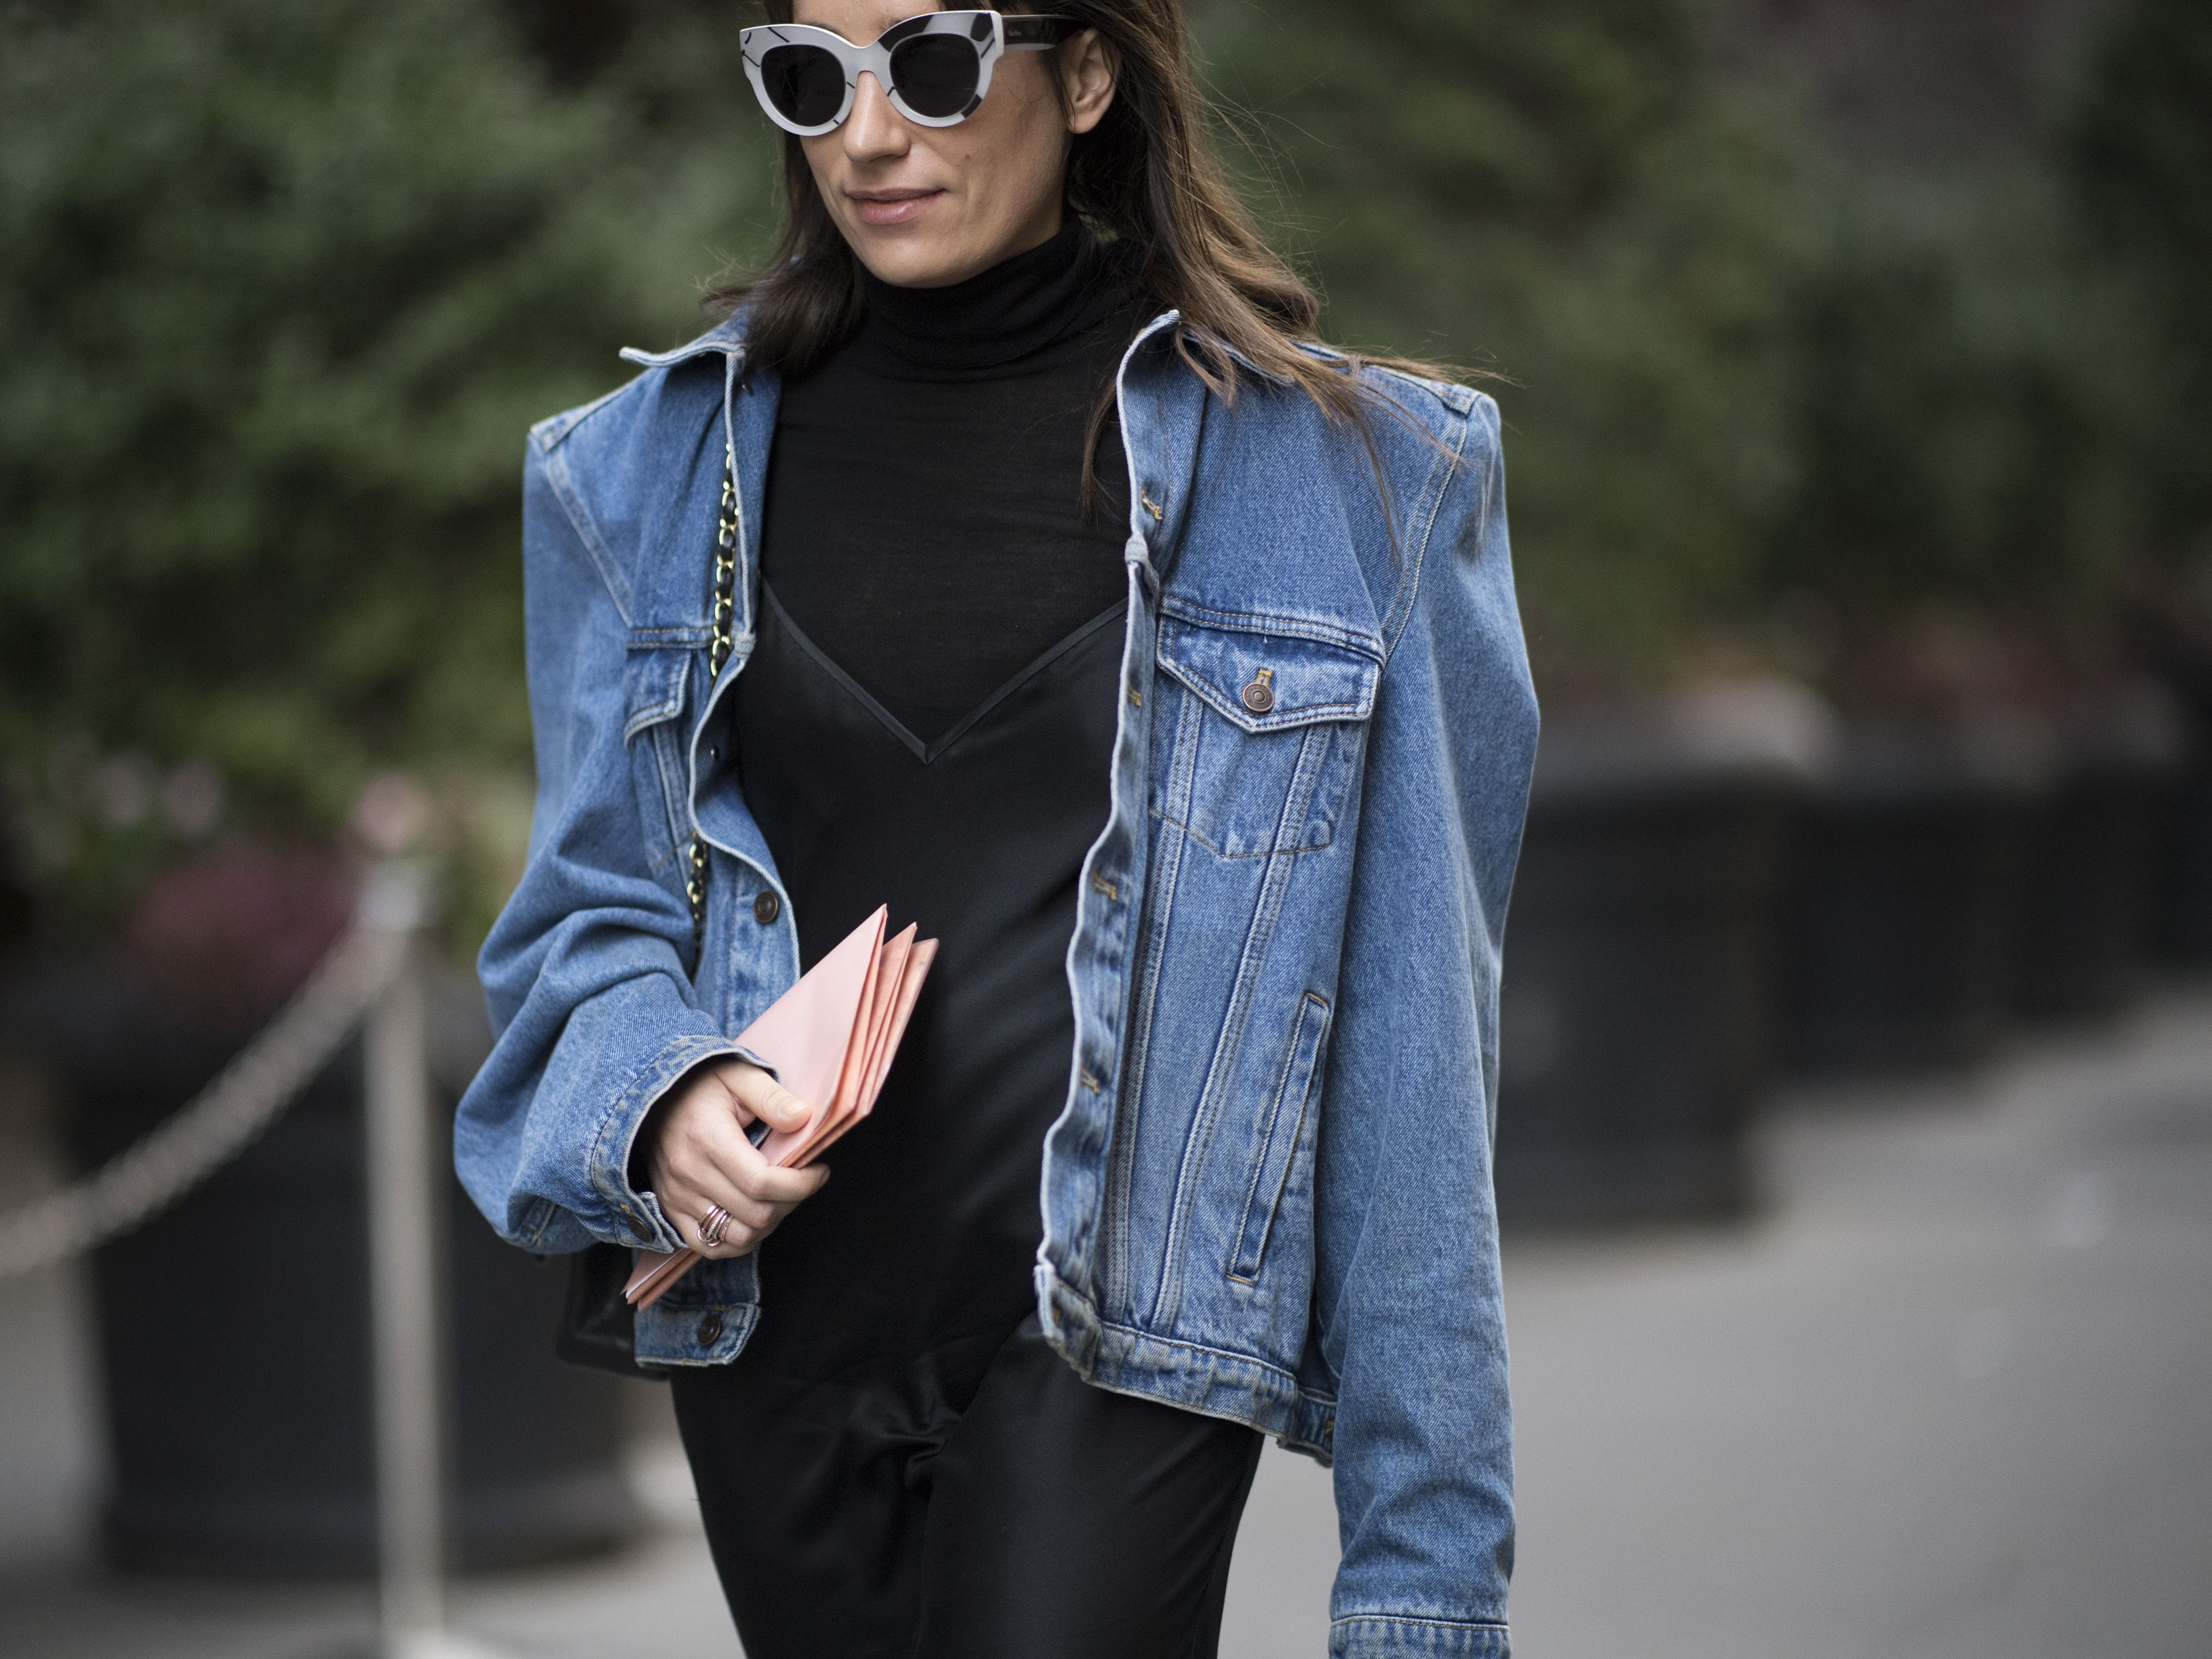 Style Tips - How to Wear a Denim Jacket